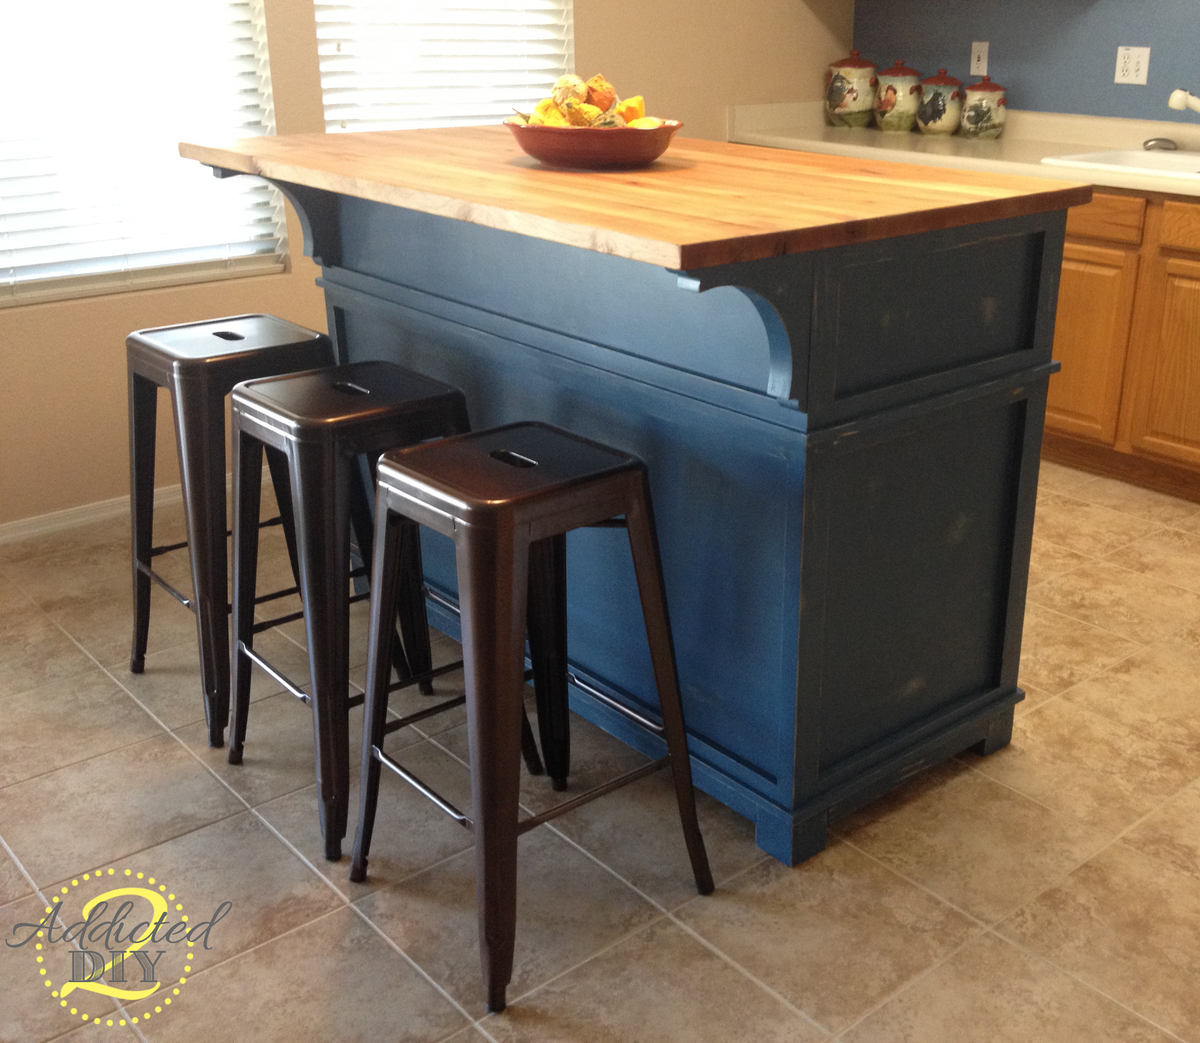 Kitchen Island Diy ana white | diy kitchen island - diy projects